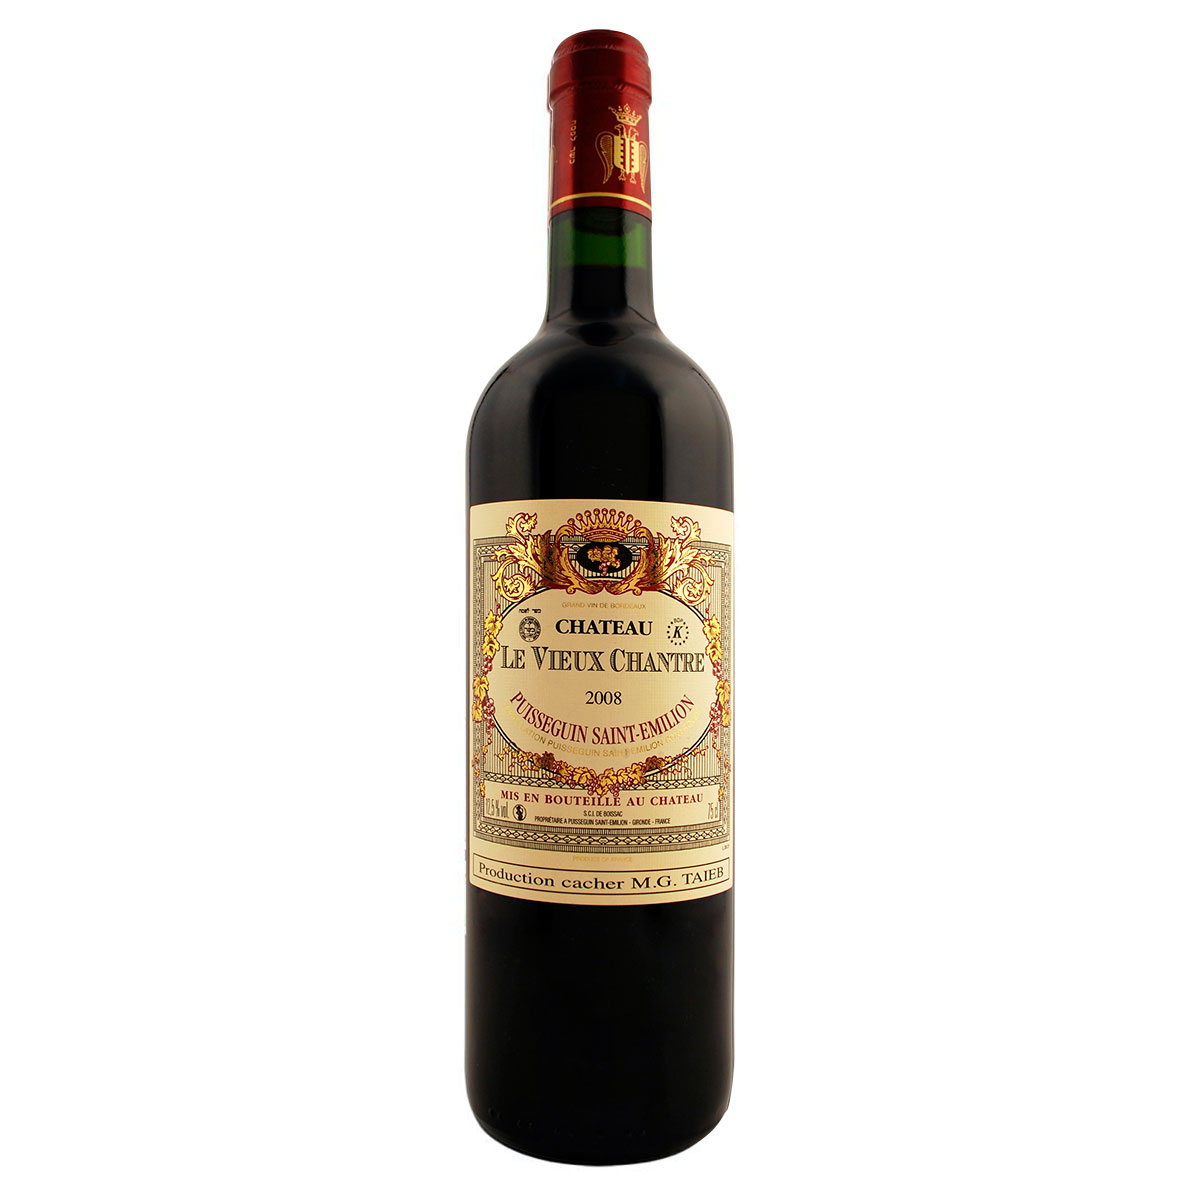 GRAND VIN Puisseguin Saint-Emilion - Chateau Le Vieux Chantre 2008